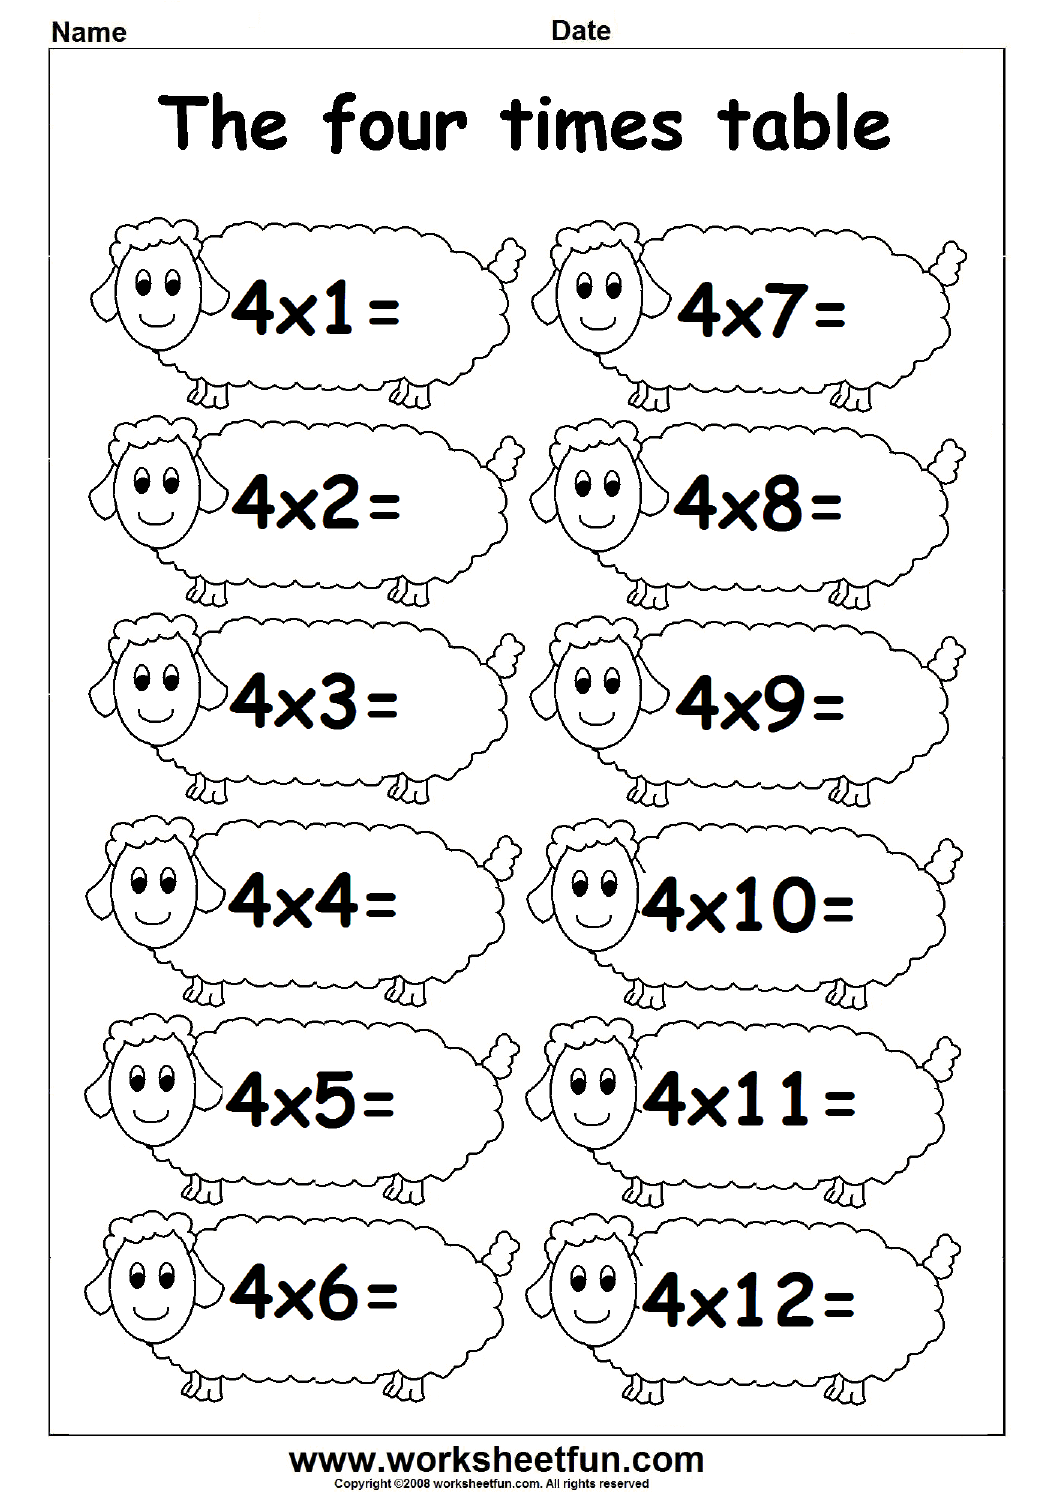 small resolution of Pin by www.worksheetfun .com on Printable Worksheets   Times tables  worksheets